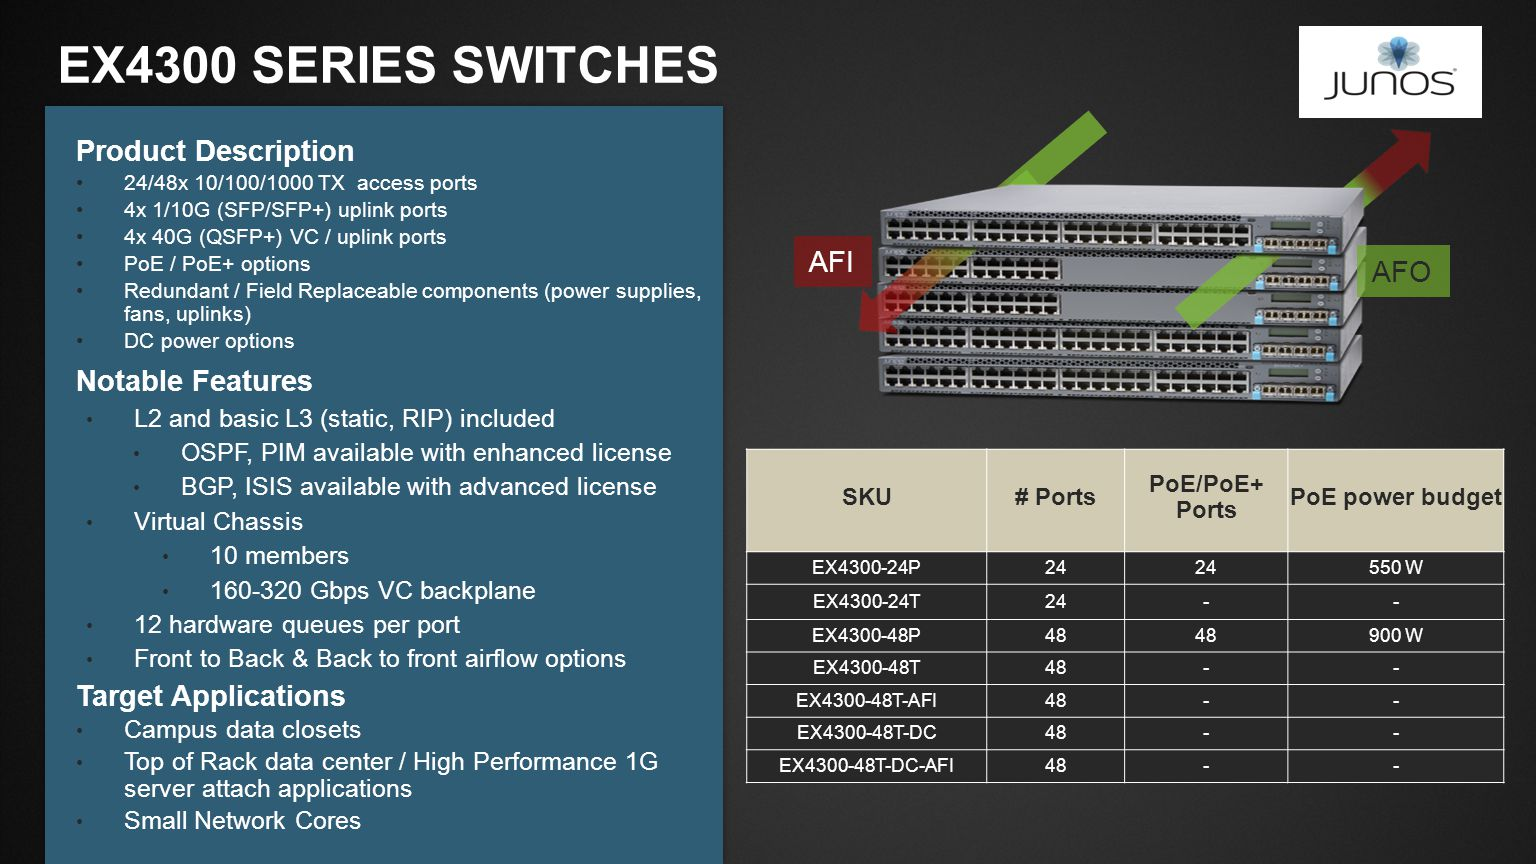 EX4300 Series switches Product Description Notable Features AFI AFO